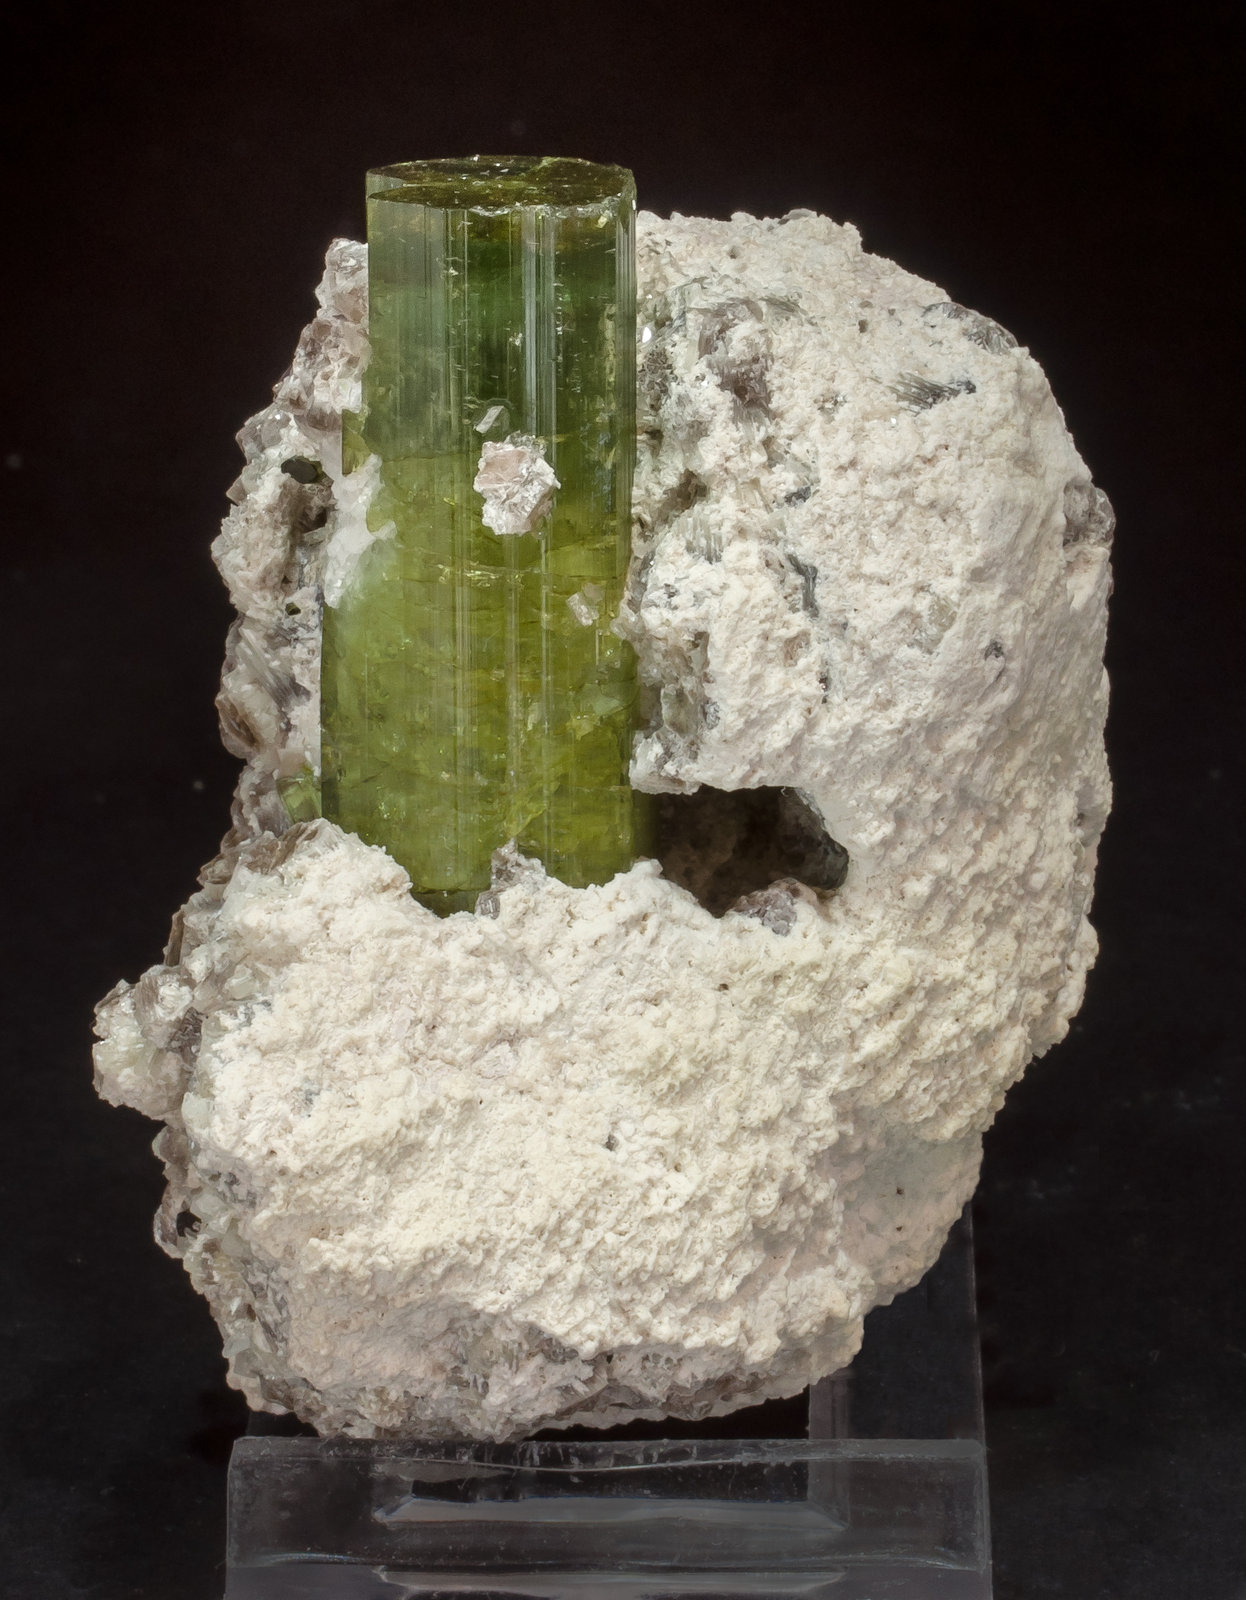 specimens/s_imagesAM4/Elbaite-EF89AM4f.jpg